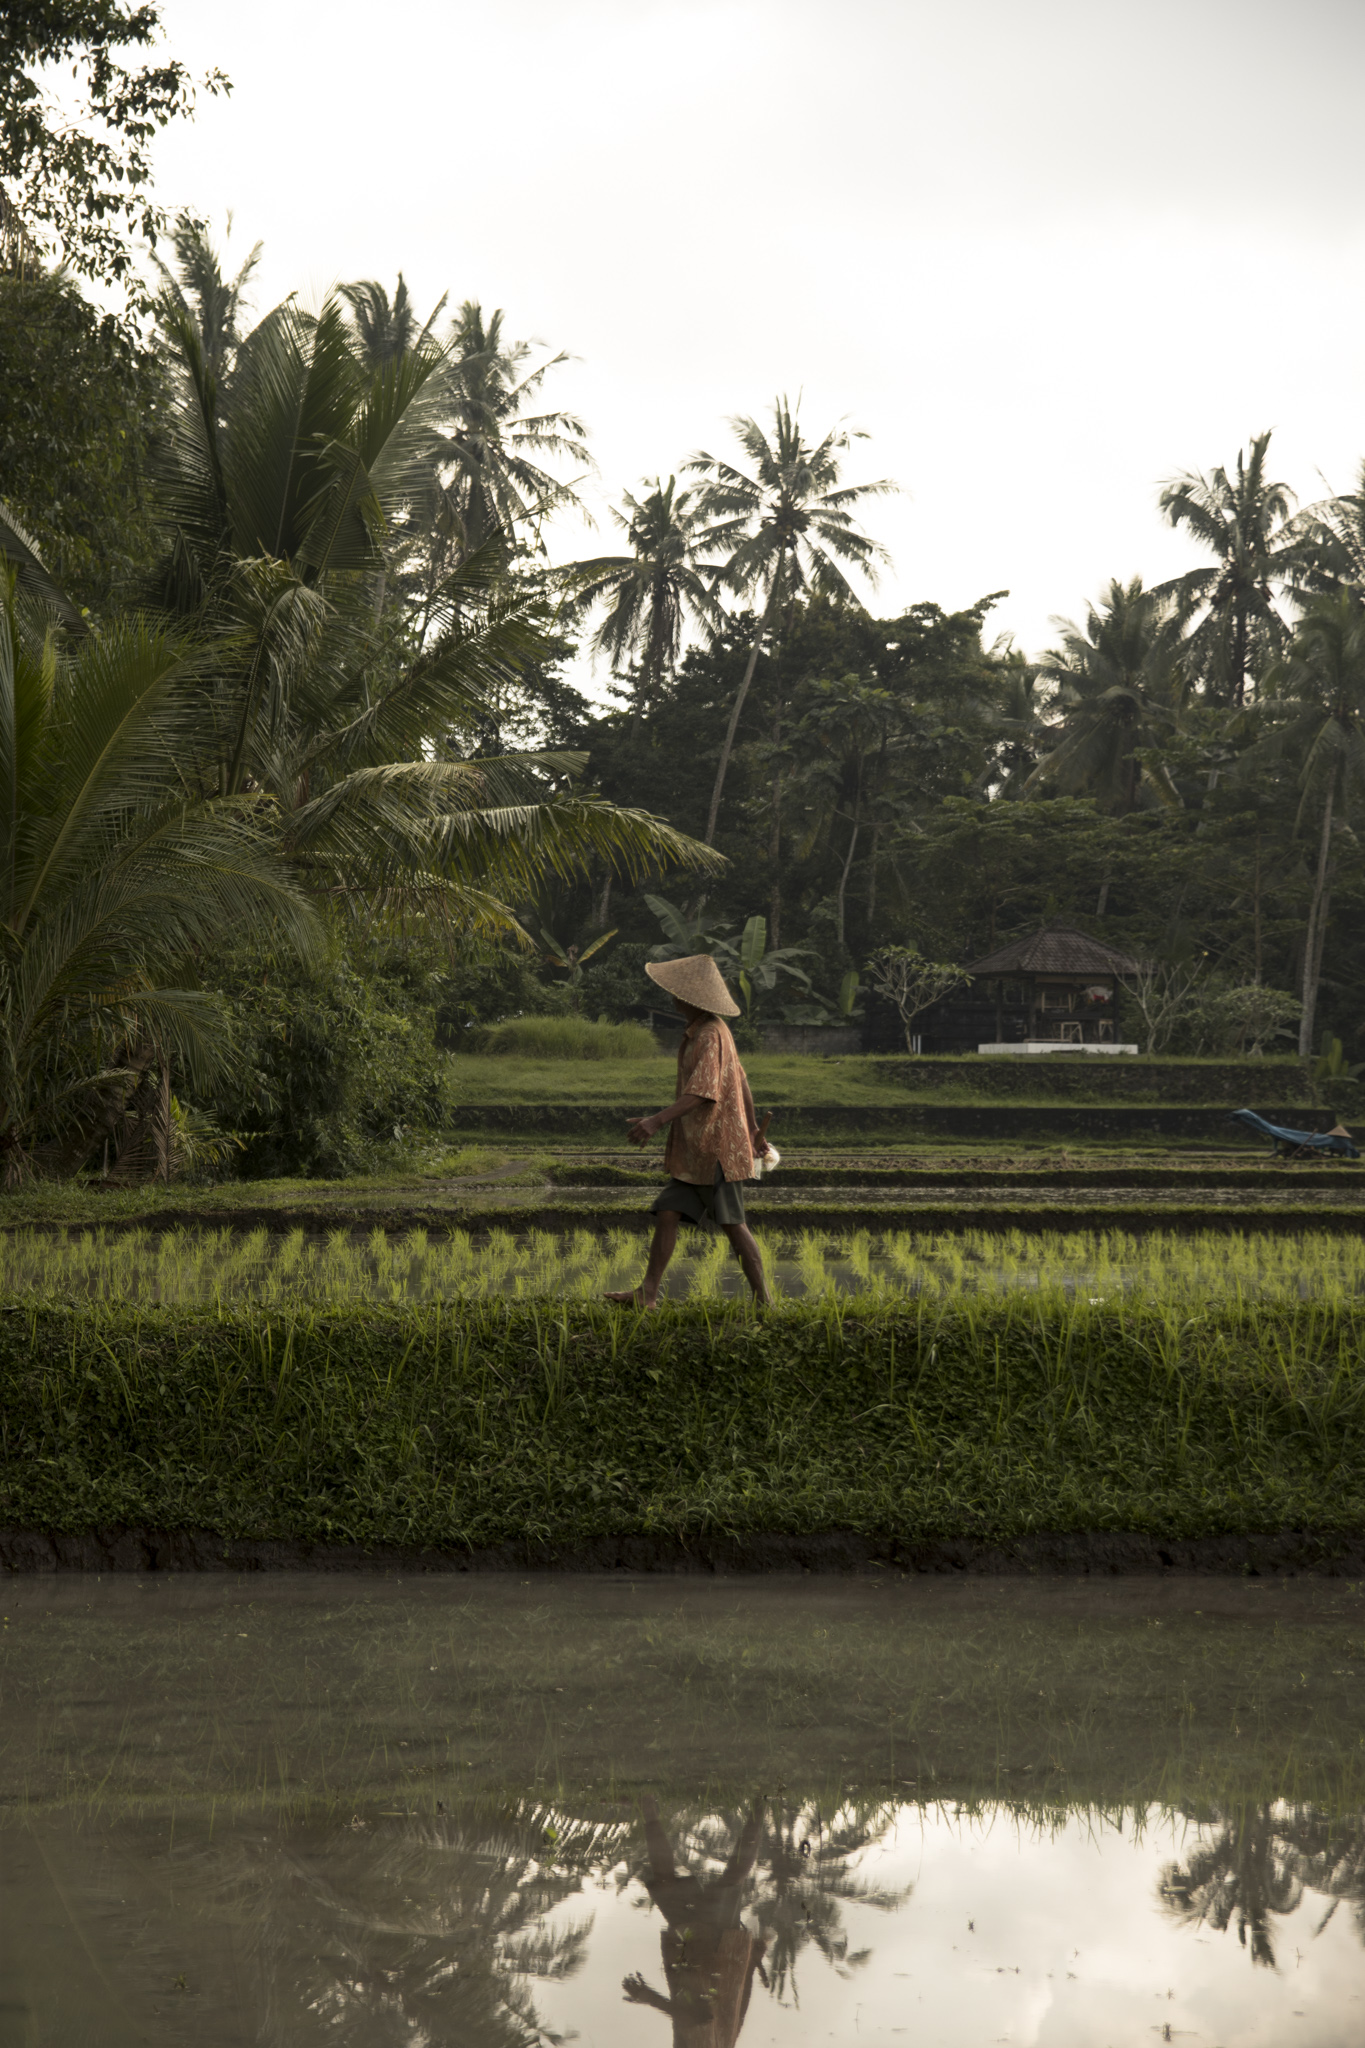 Rice is the lifeblood of the people of Bali, and has been a staple of their livelihood and diet since the 8th century.